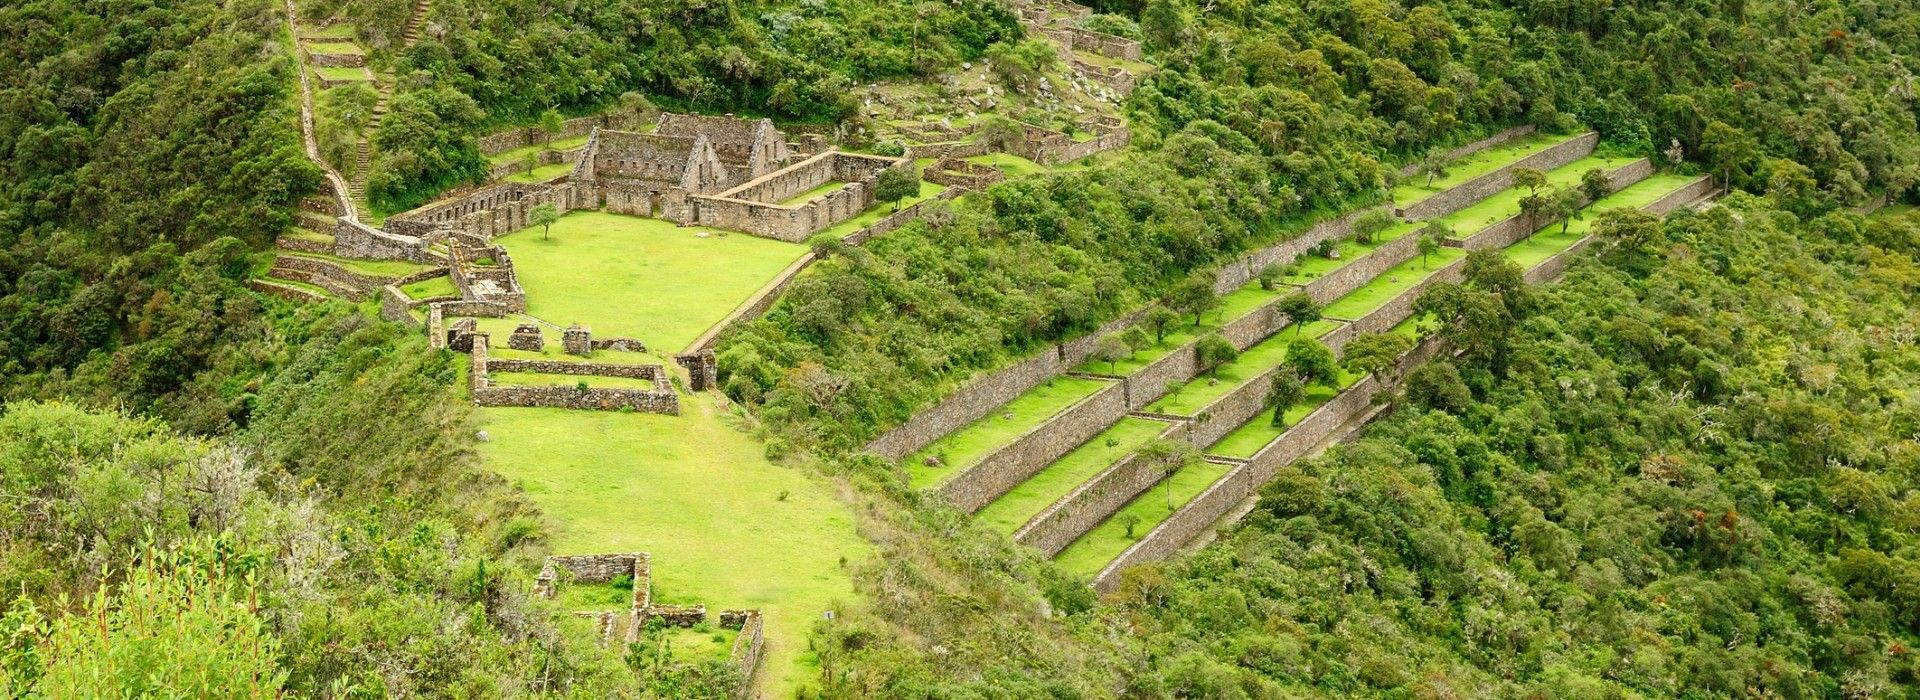 Tours and holidays in Choquequirao